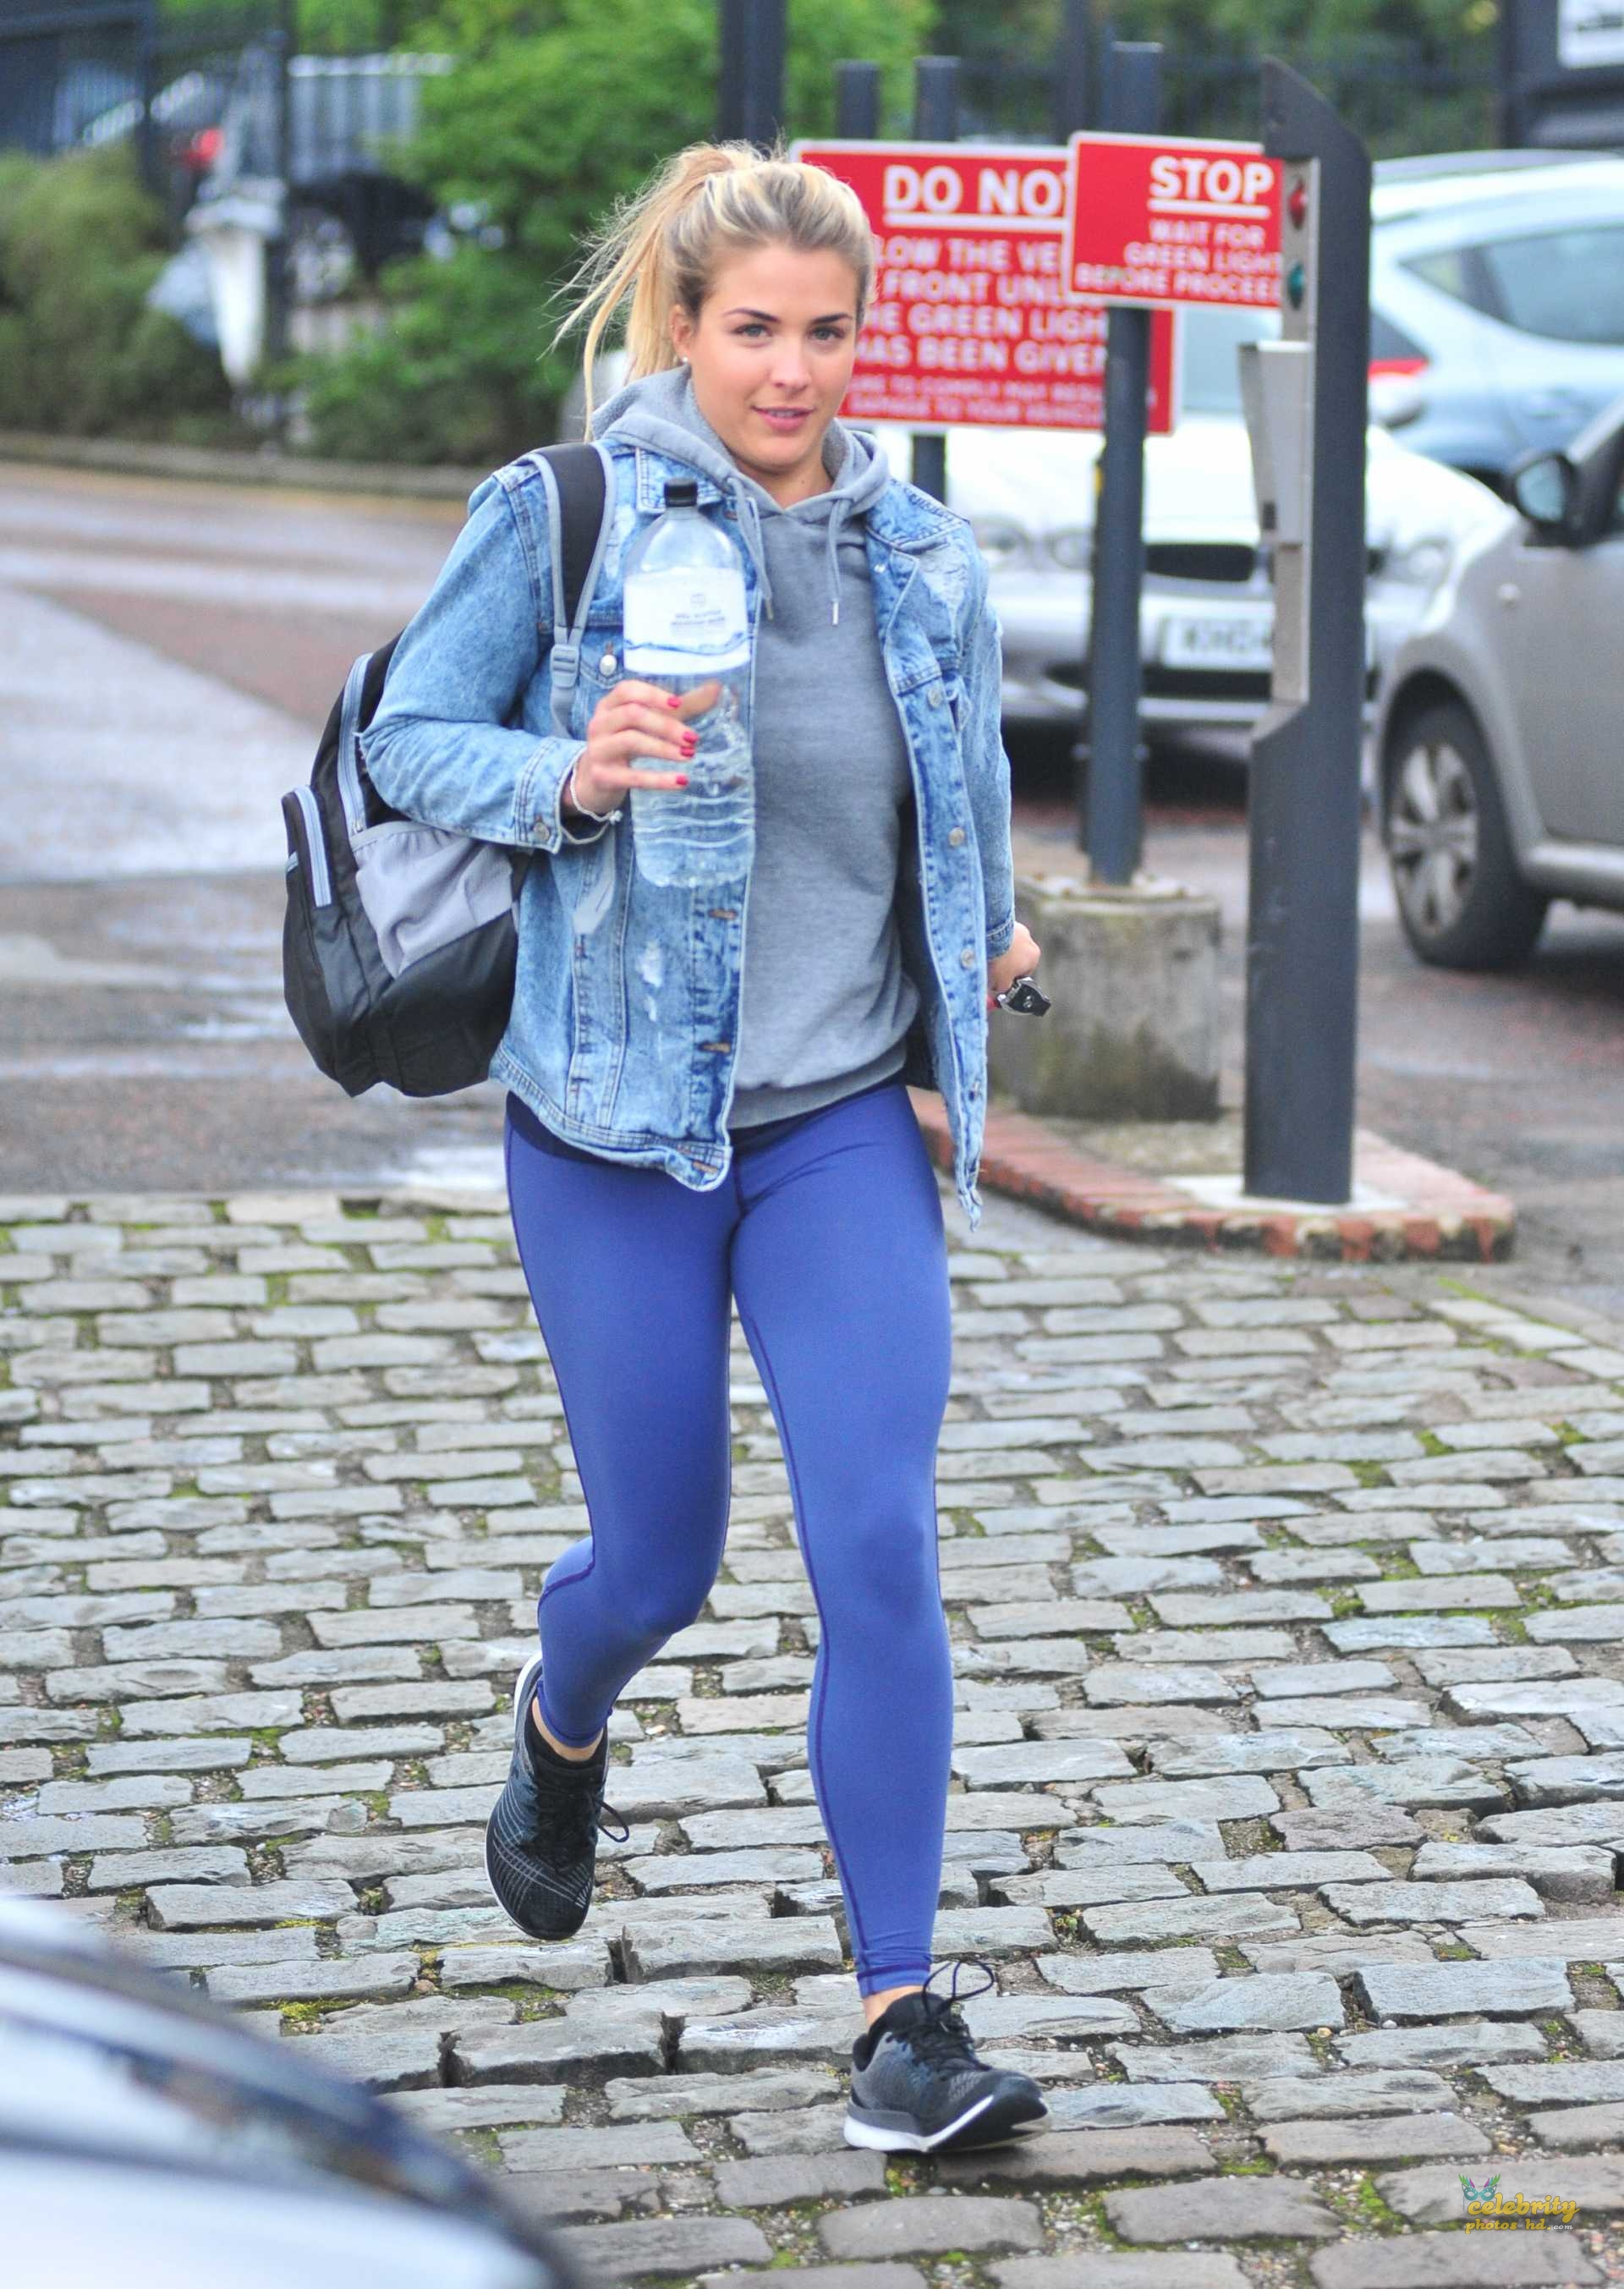 Gemma Atkinson Booty, Ariving at 'Strictly Come Dancing' Rehearsals (3)